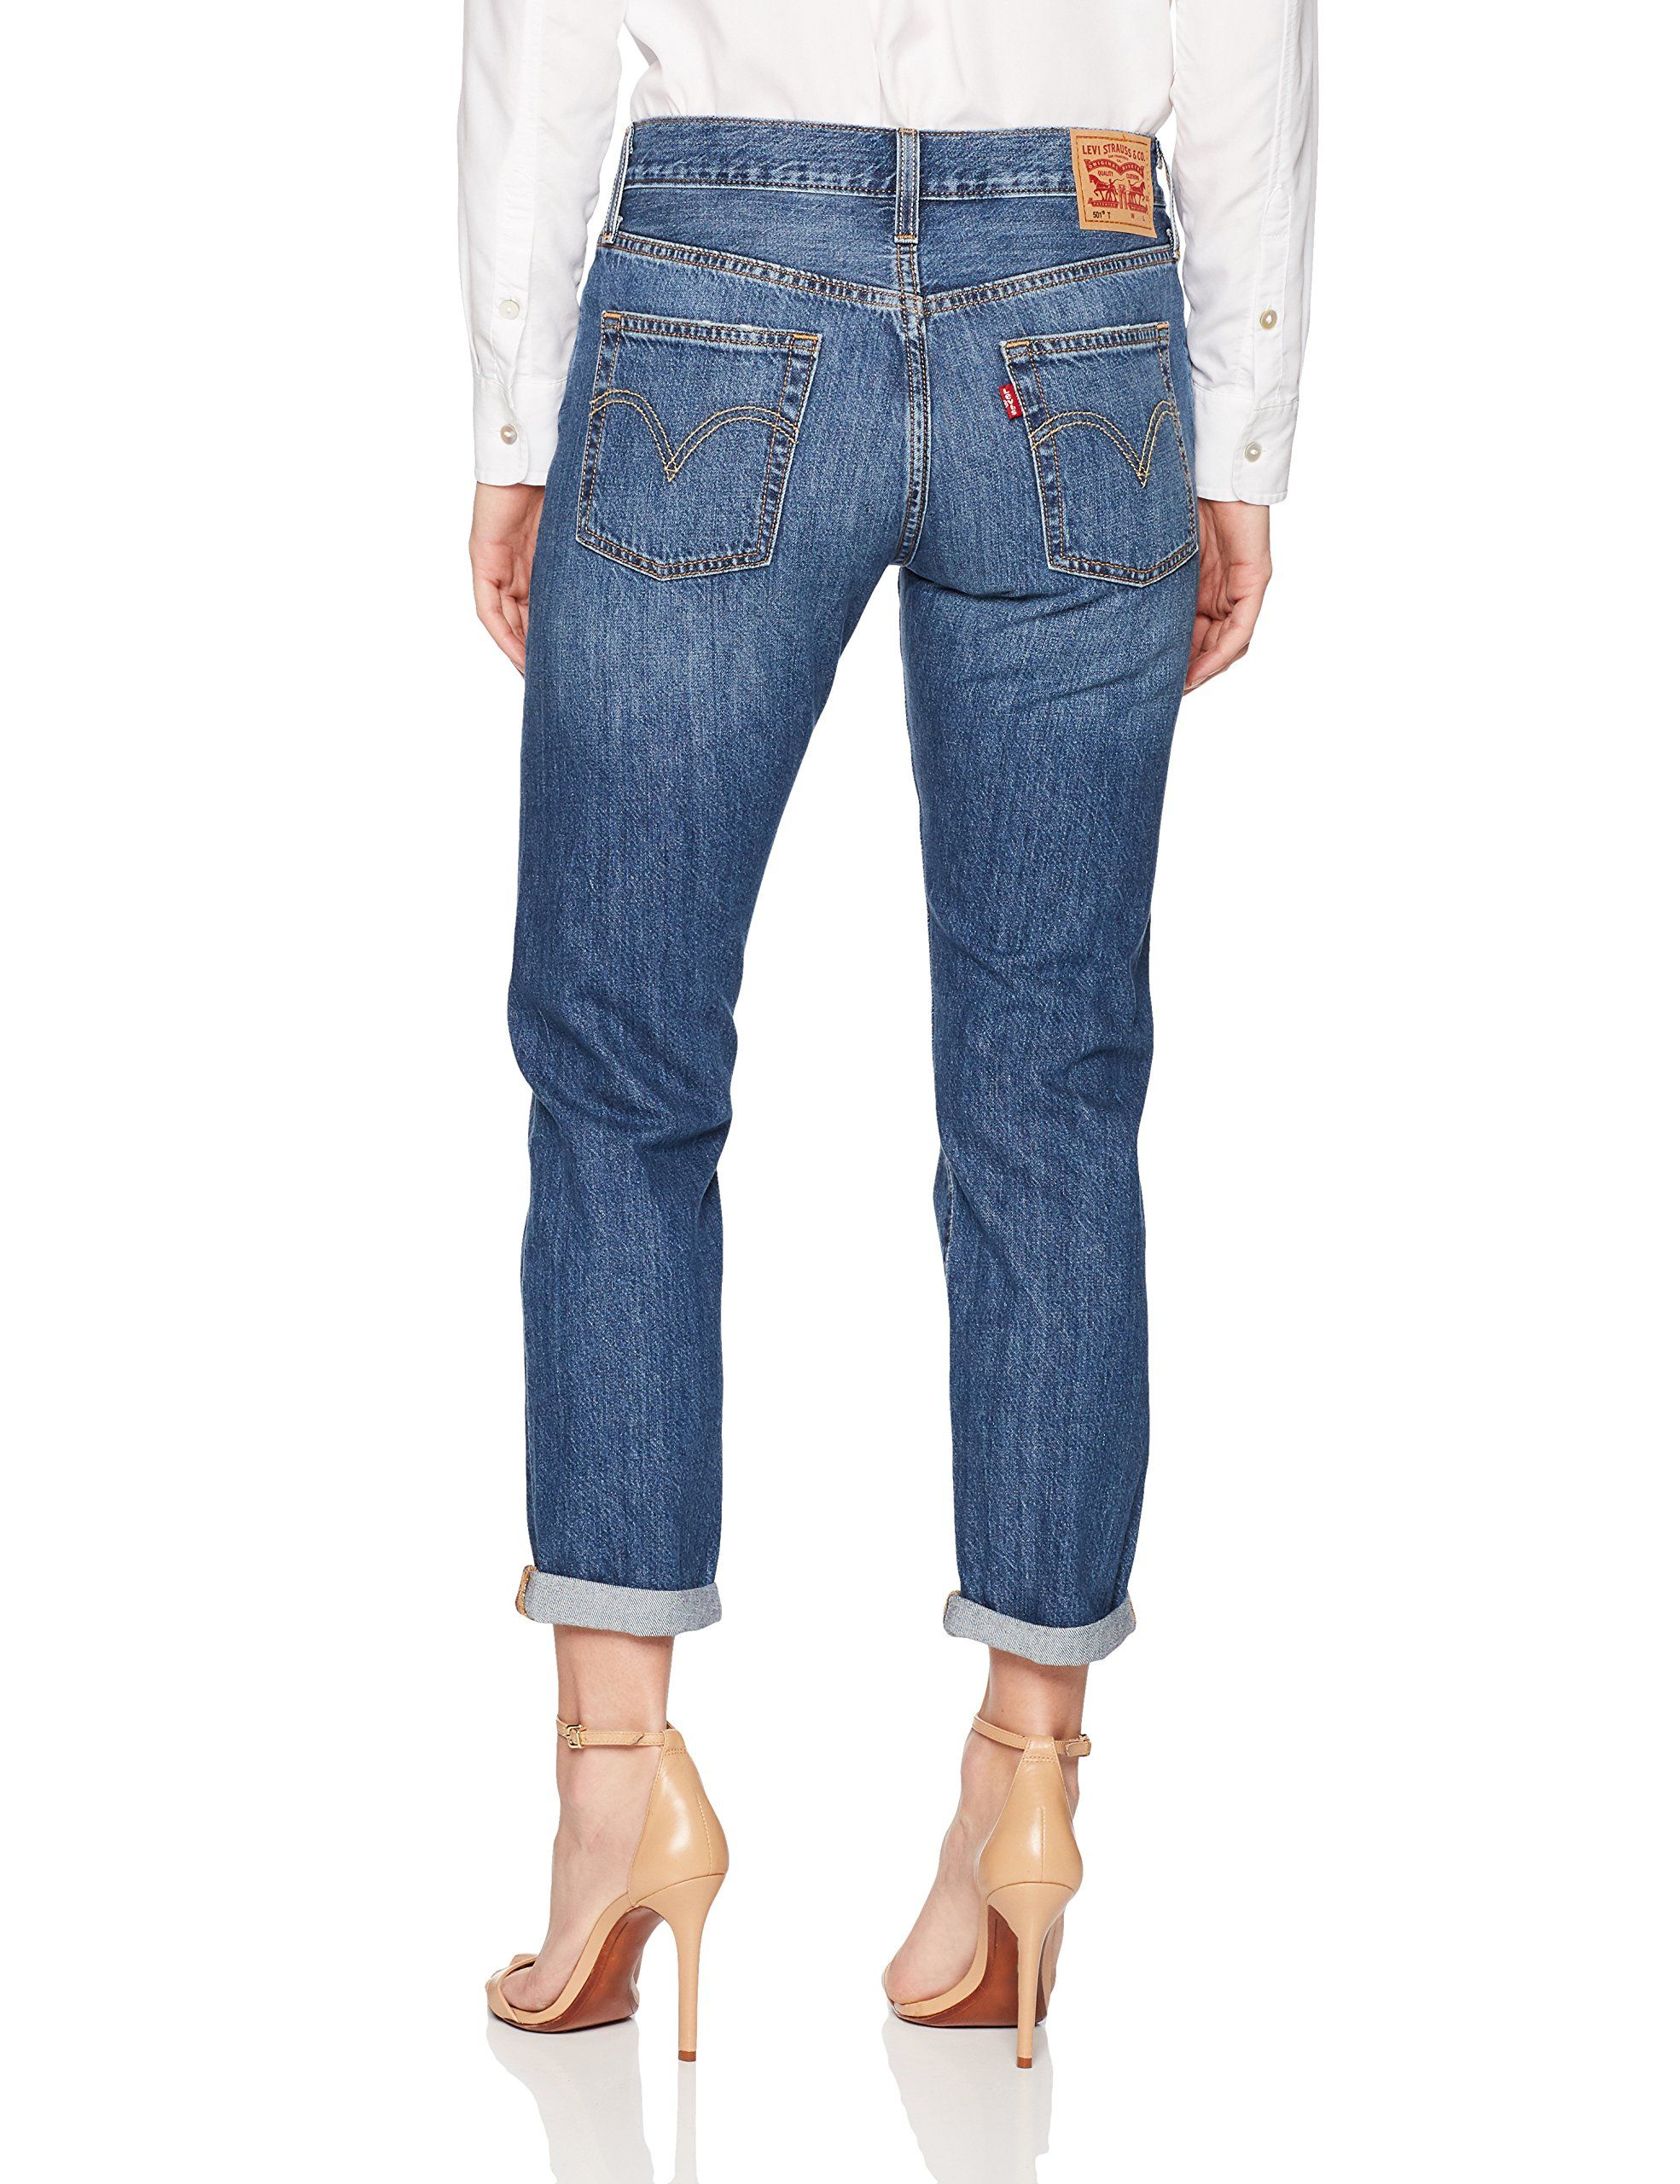 Simple 501 Womens Taper Visit Jeans Levis 2 The Life Us 26 Image ORFxnx